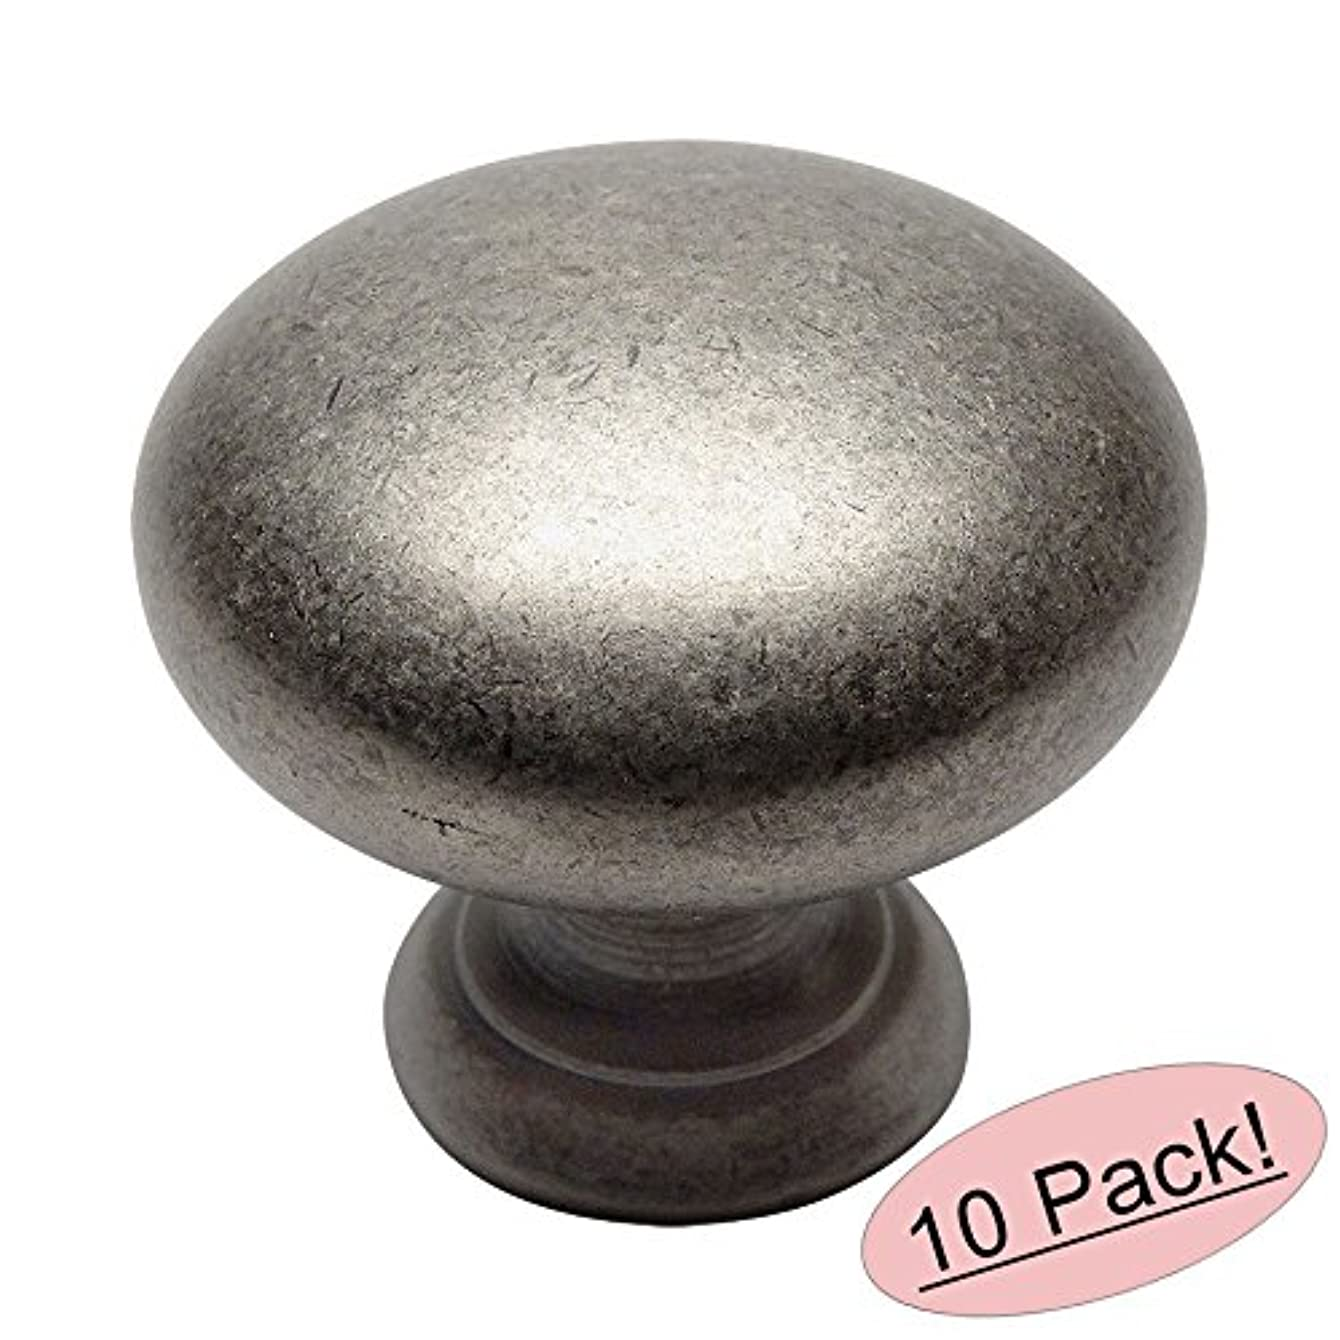 10 Pack - Cosmas 4950WN Weathered Nickel Cabinet Hardware Round Mushroom Knob - 1-1/4